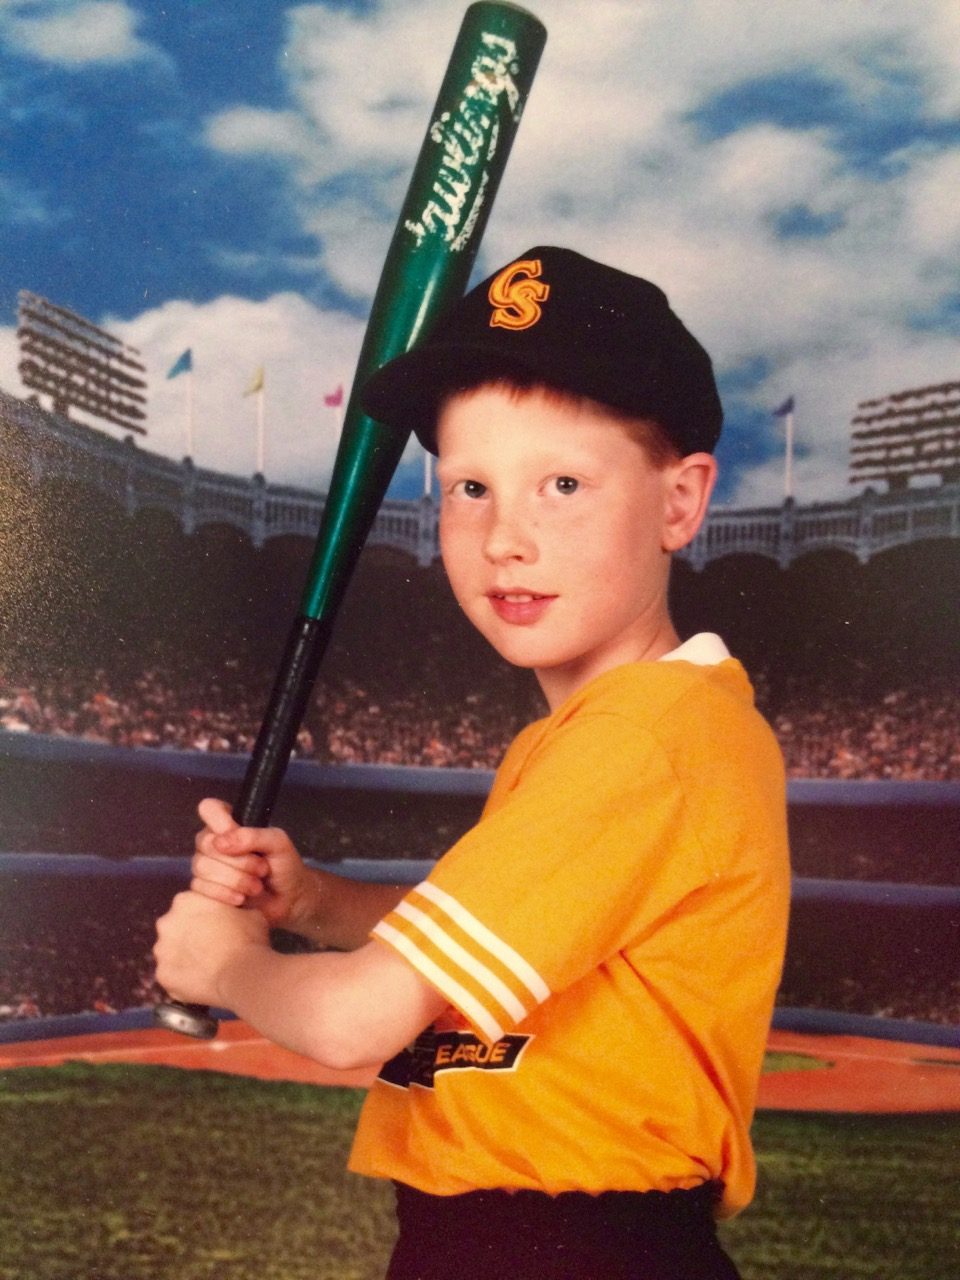 Stephen Ridings started playing baseball at age seven, playing on the Commack South Little League team, the CGI Braves and the St. Anthony's High School team. Photo by Tom Ridings